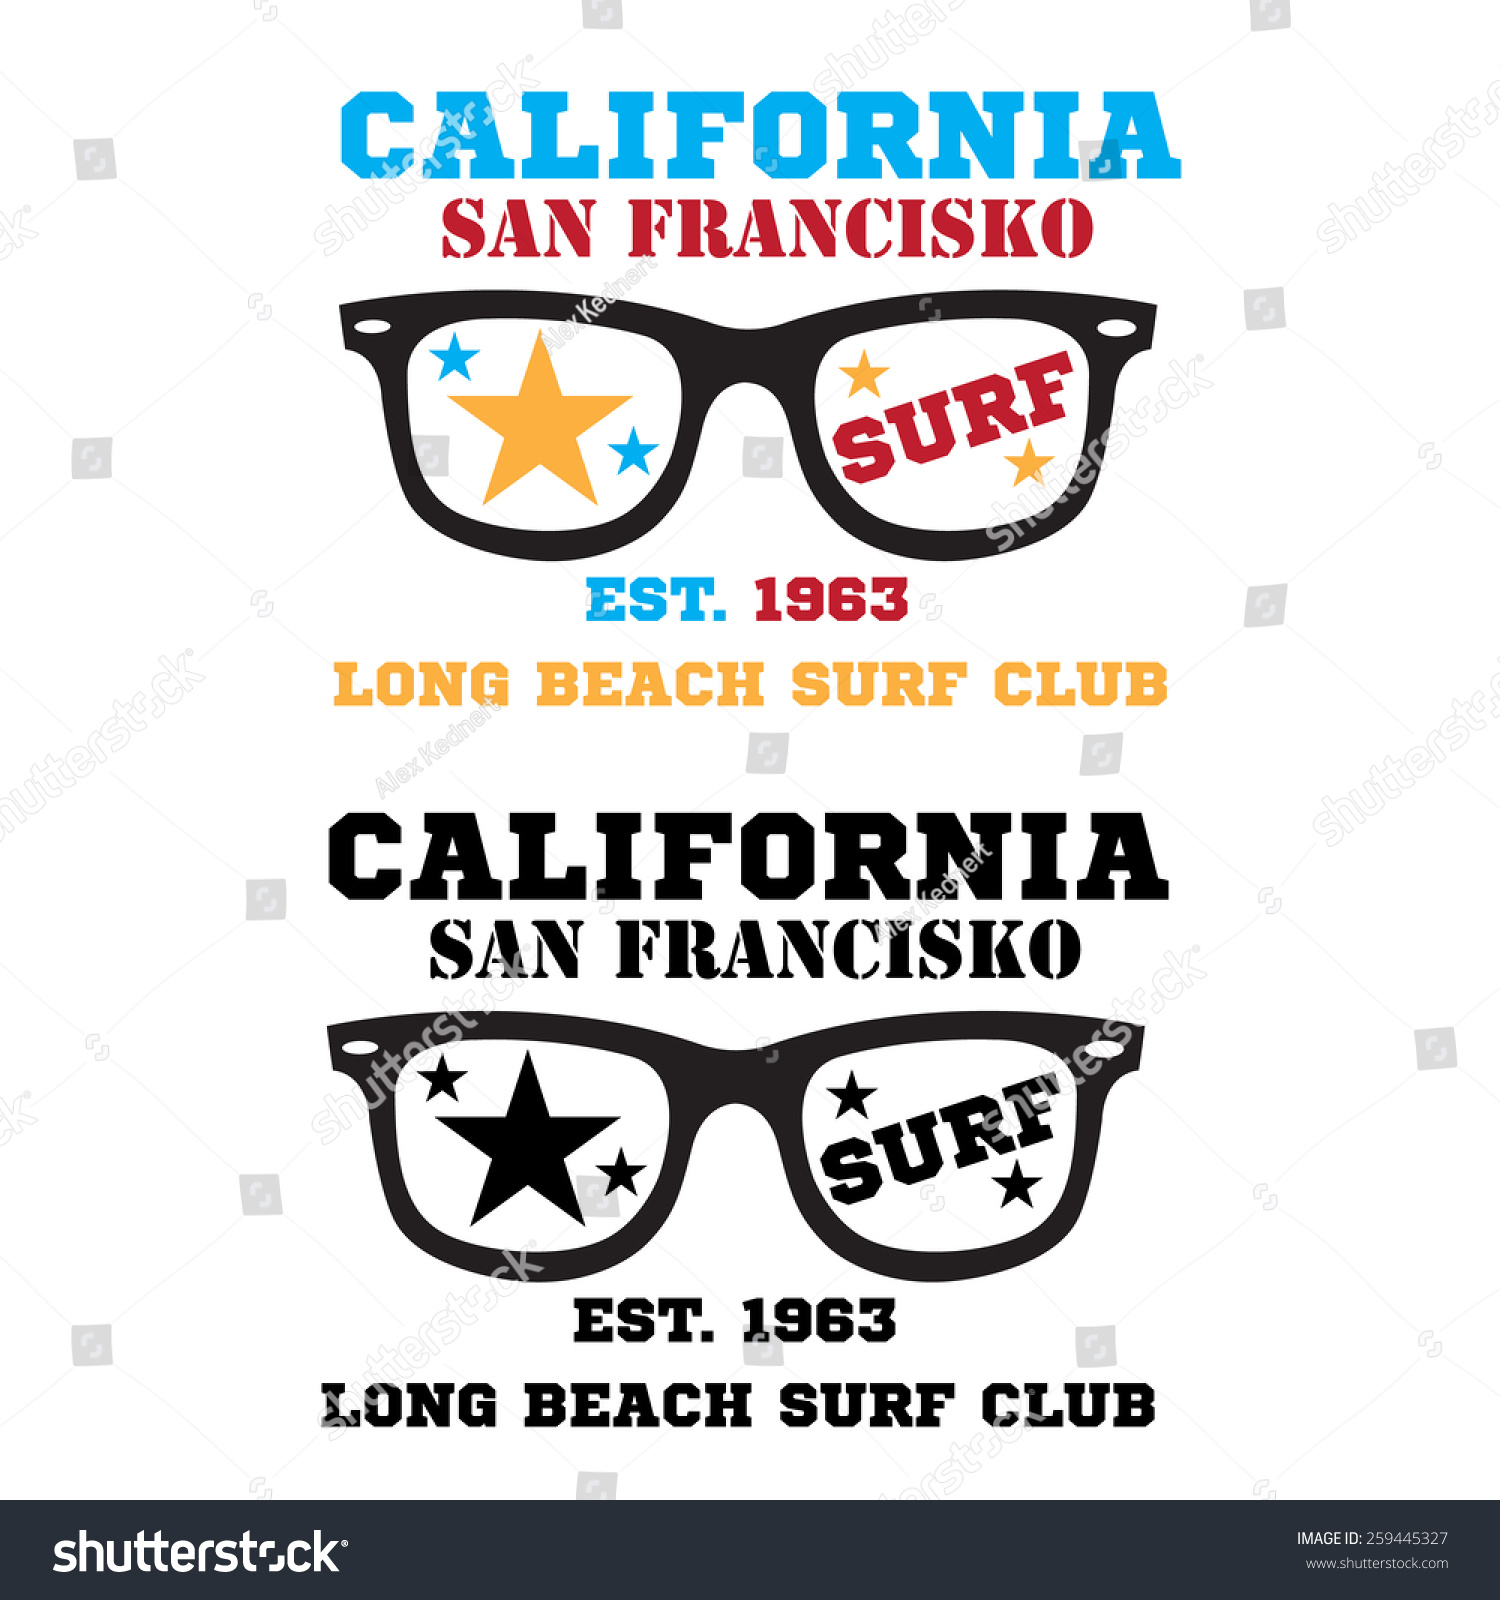 0bcce486c711 Royalty-free California surf typography logo t-shirt…  259445327 ...